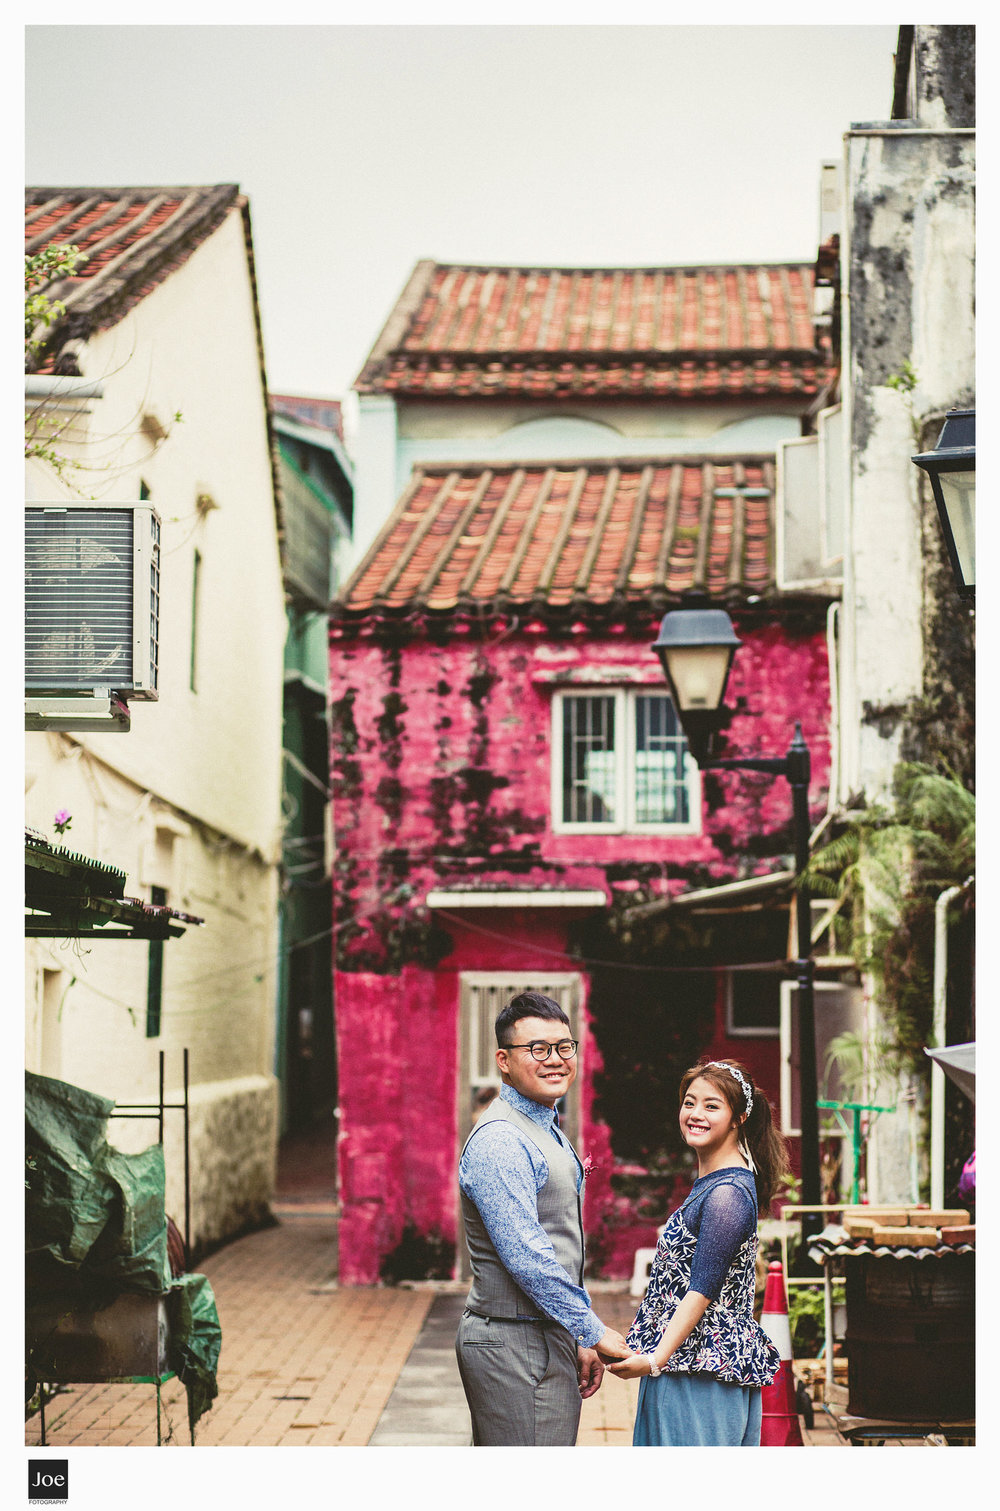 082-coloane-village-macau-pre-wedding-jie-min-joe-fotography.jpg